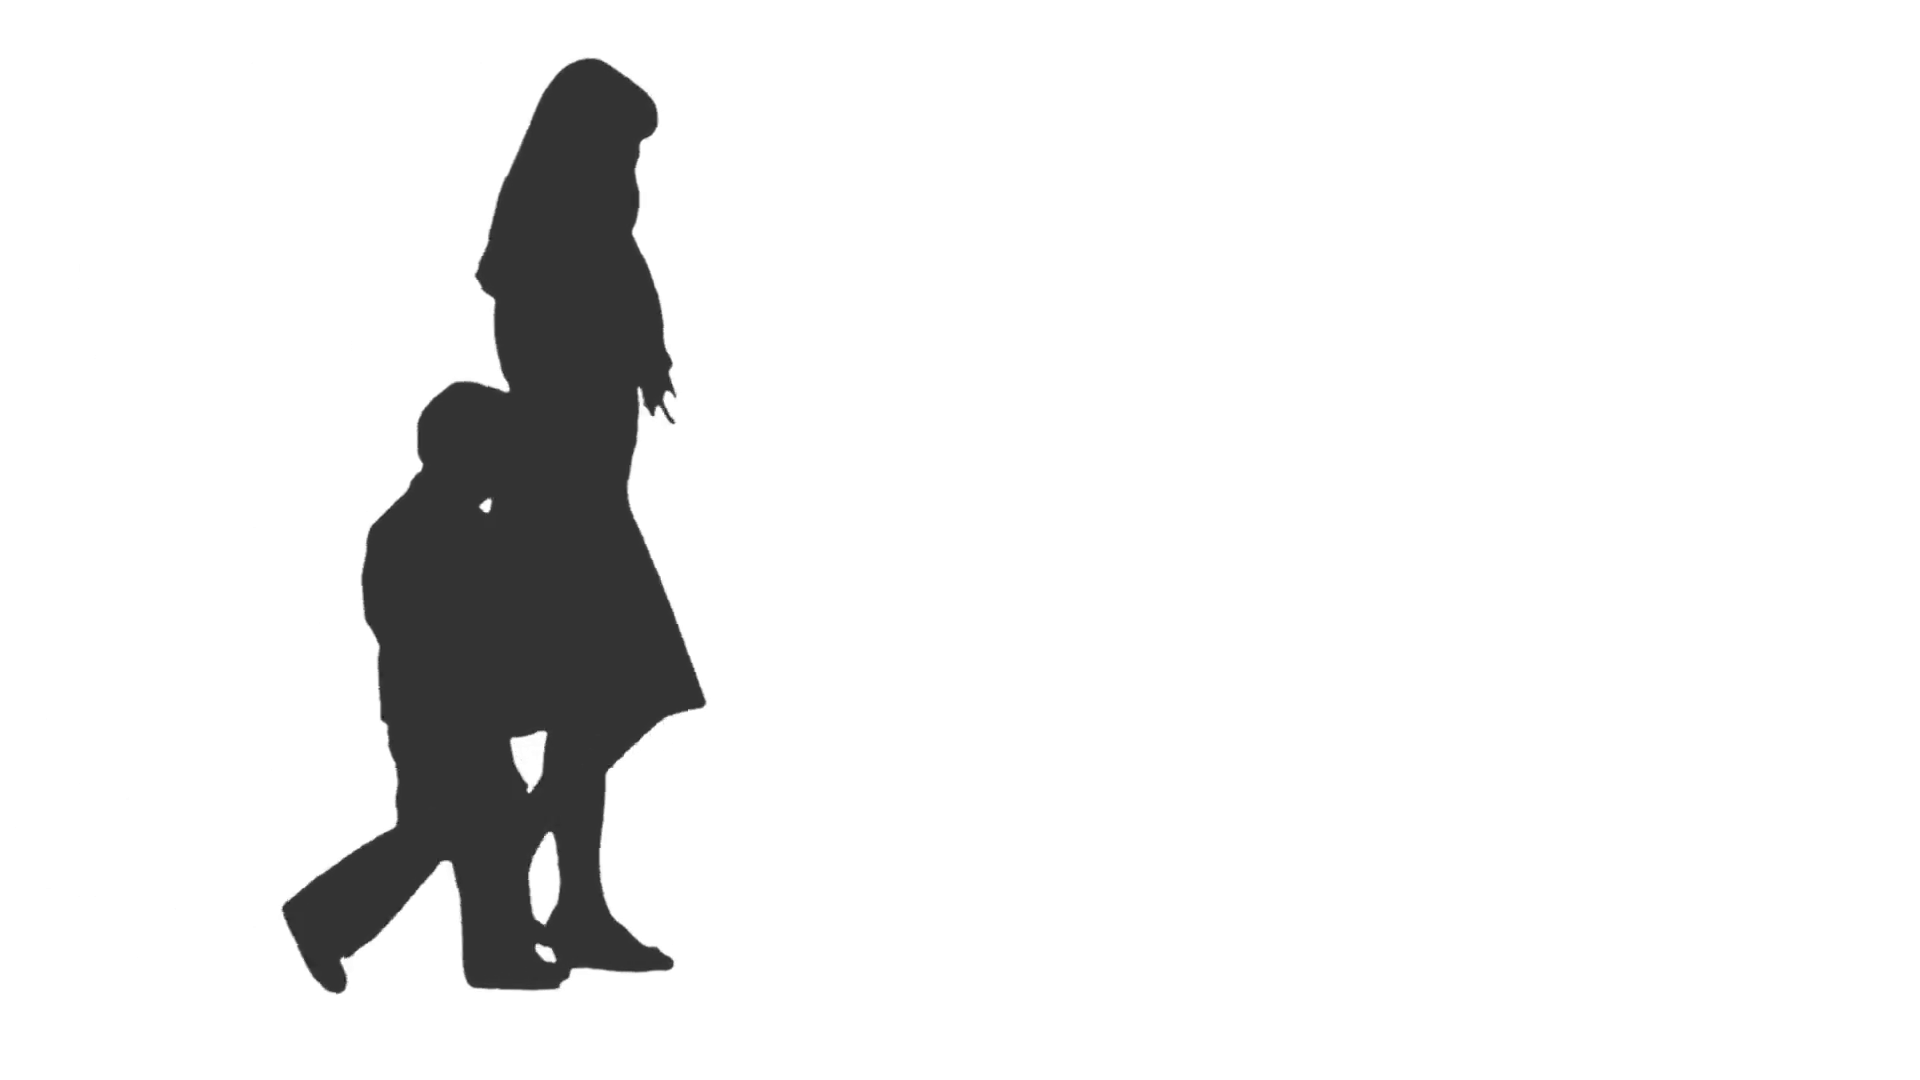 1920x1080 Silhouette Of A Woman Walking With A Little Boy, Side View. Full